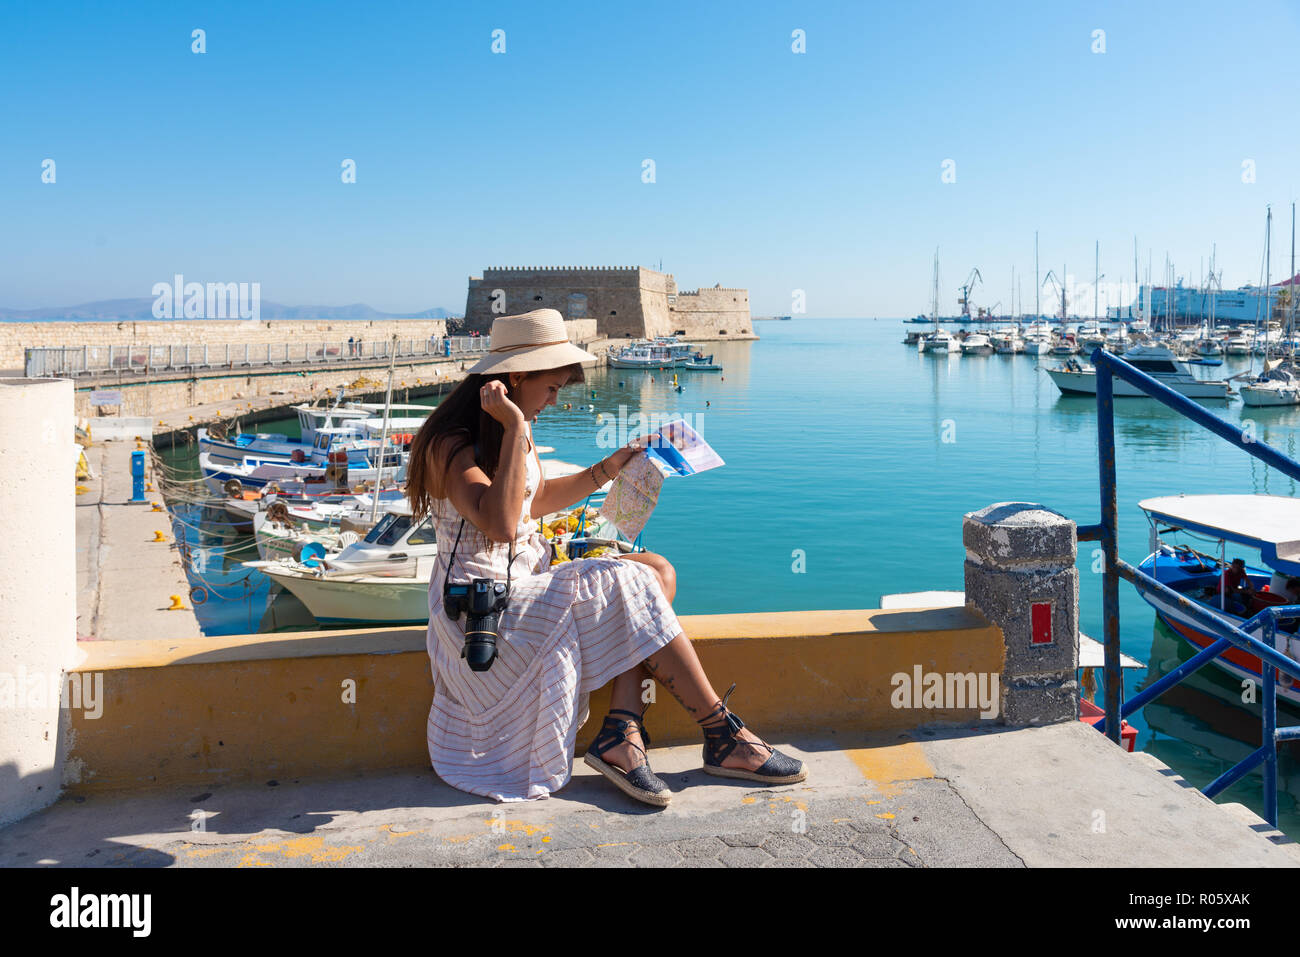 Travelling tourist woman on vacation in Heraklion Crete walking at the port. Lovely elegant girl in beige dress visiting the famous Mediterranean Vene - Stock Image